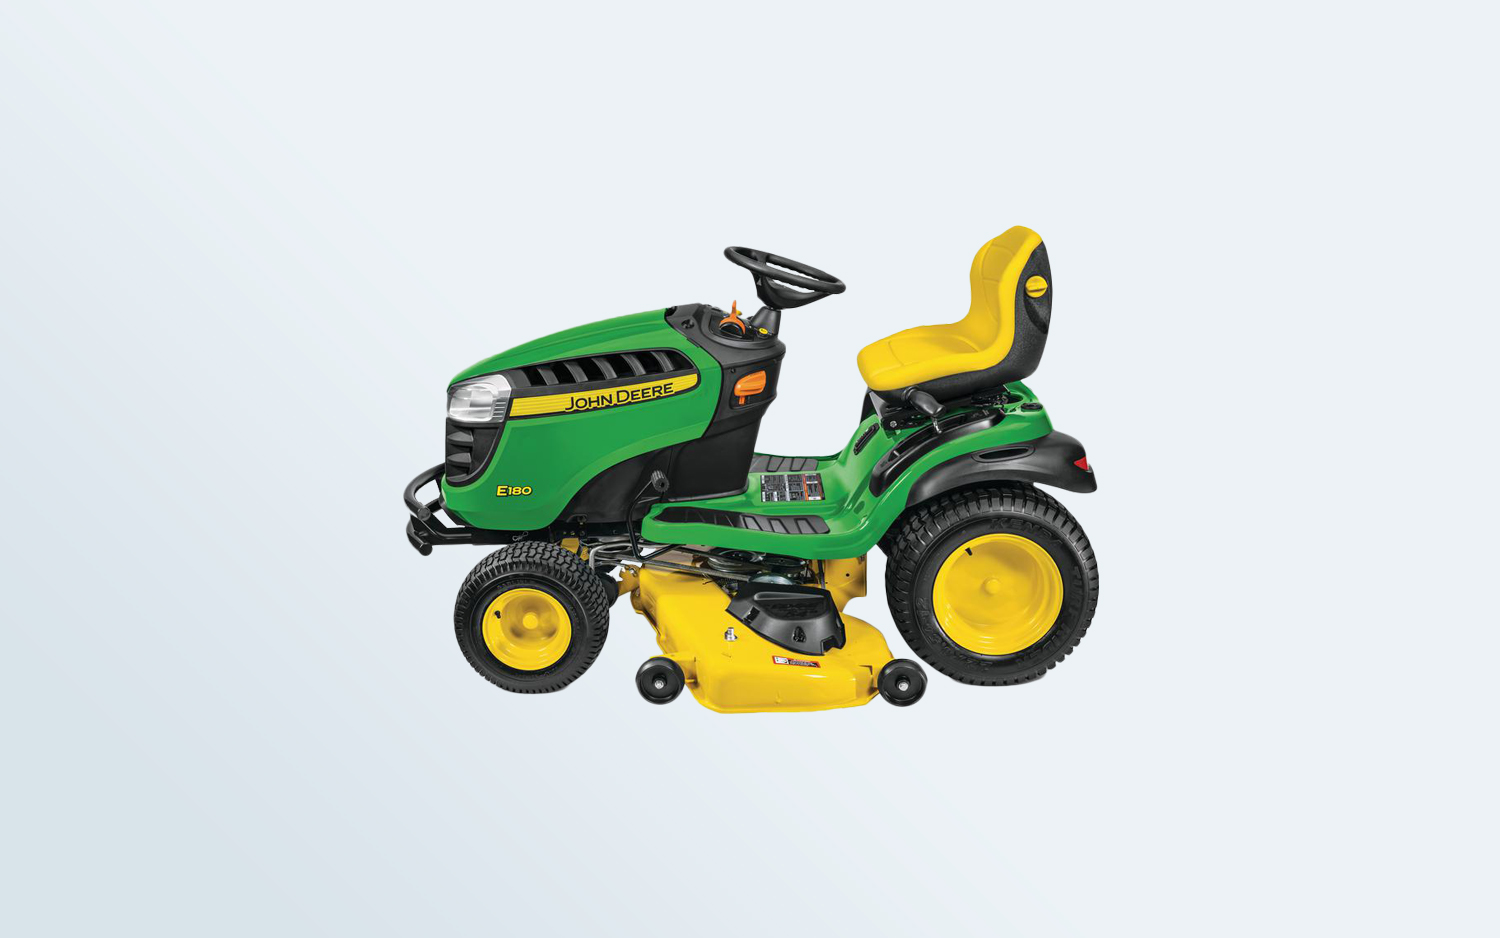 Best Ride-on Mowers 2019 - Riding Lawn Mower Reviews | Top